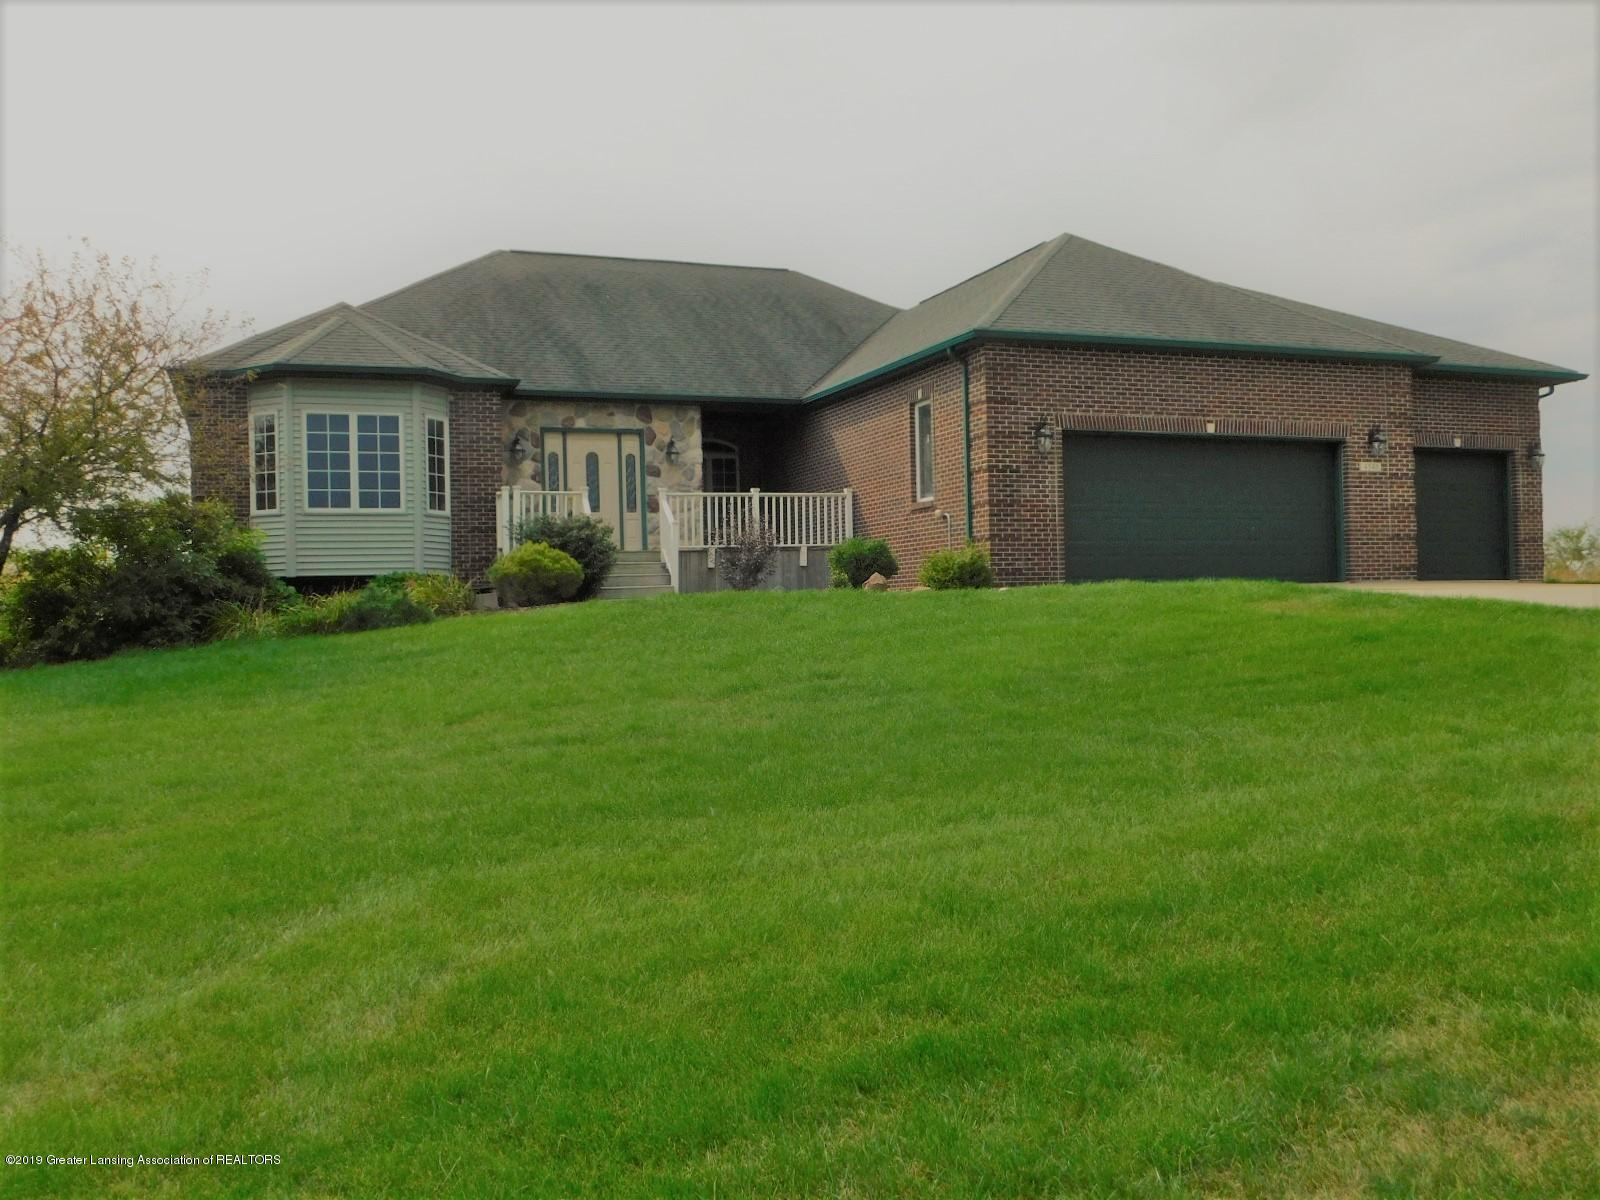 4545 S Green Gables Dr - Front Exterior - 1